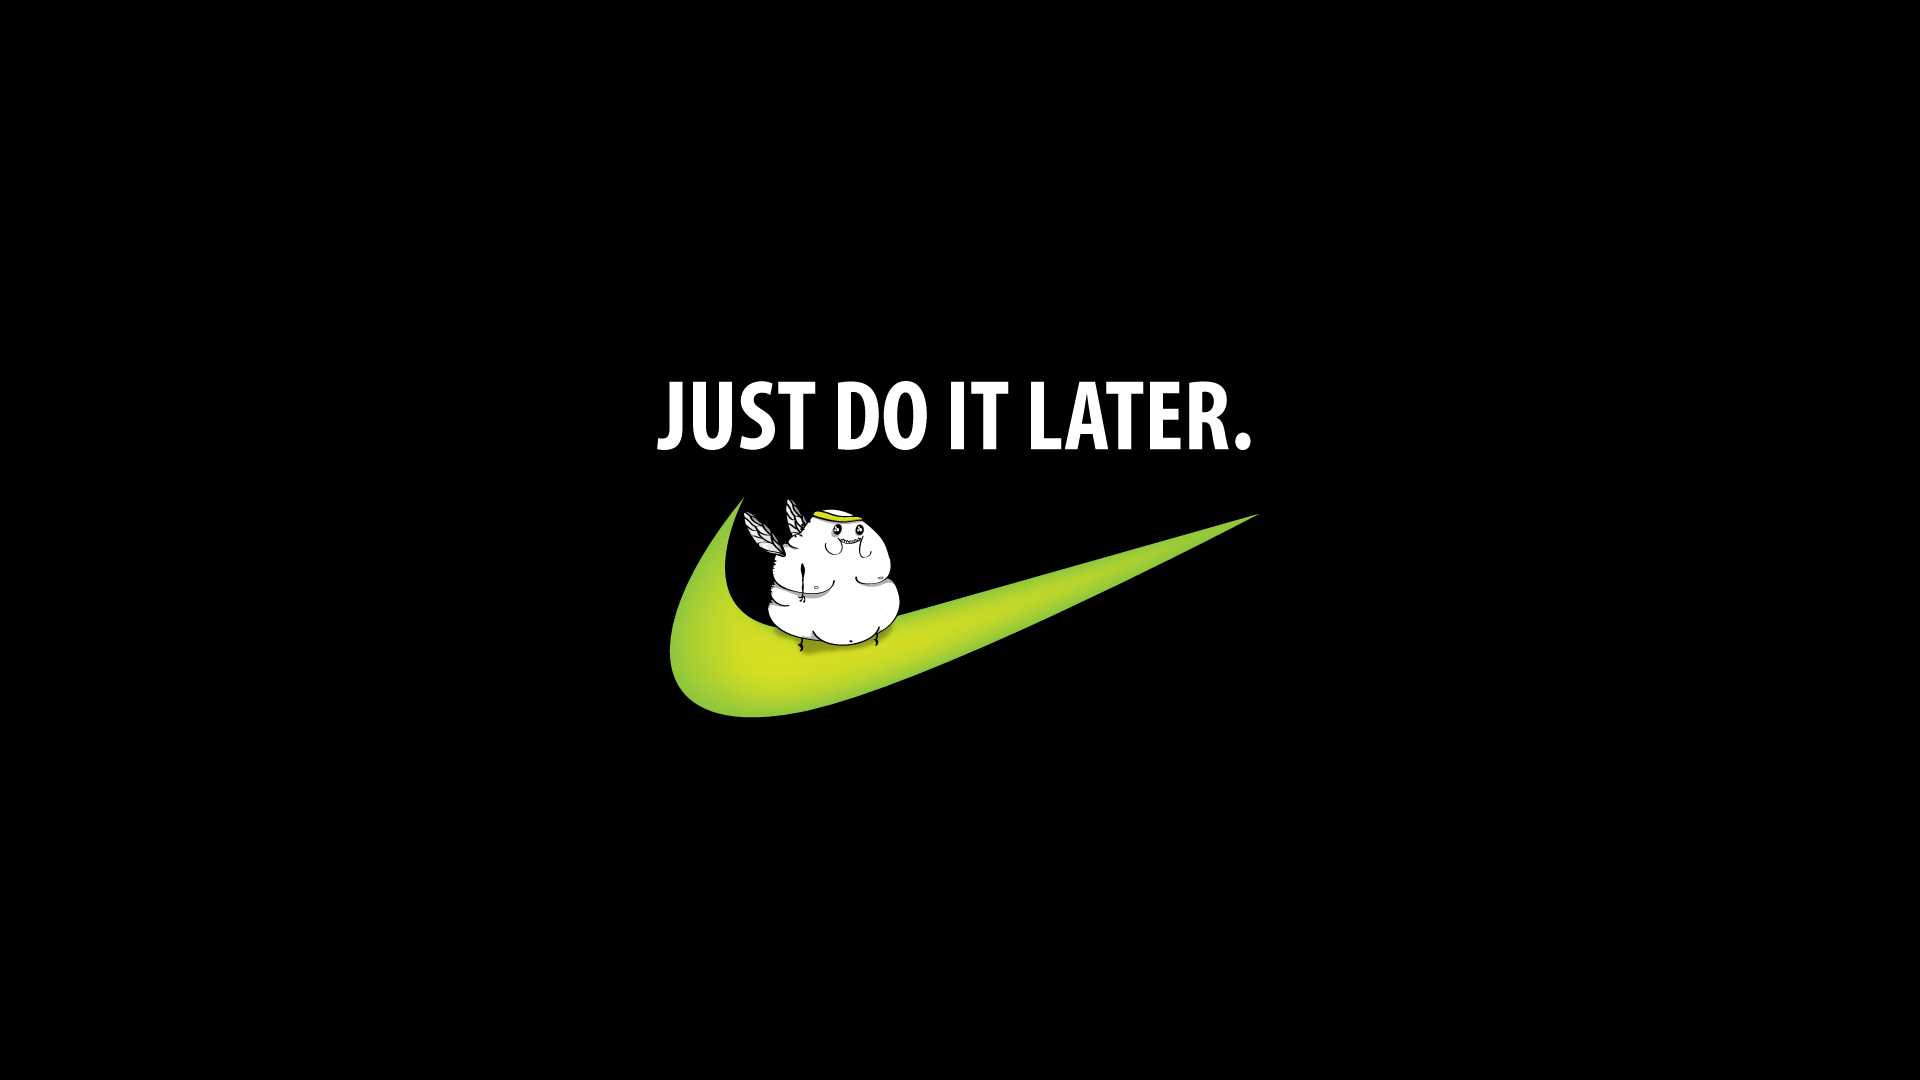 1920x1080 45+] Nike Motivational Quotes Wallpaper on WallpaperSafari